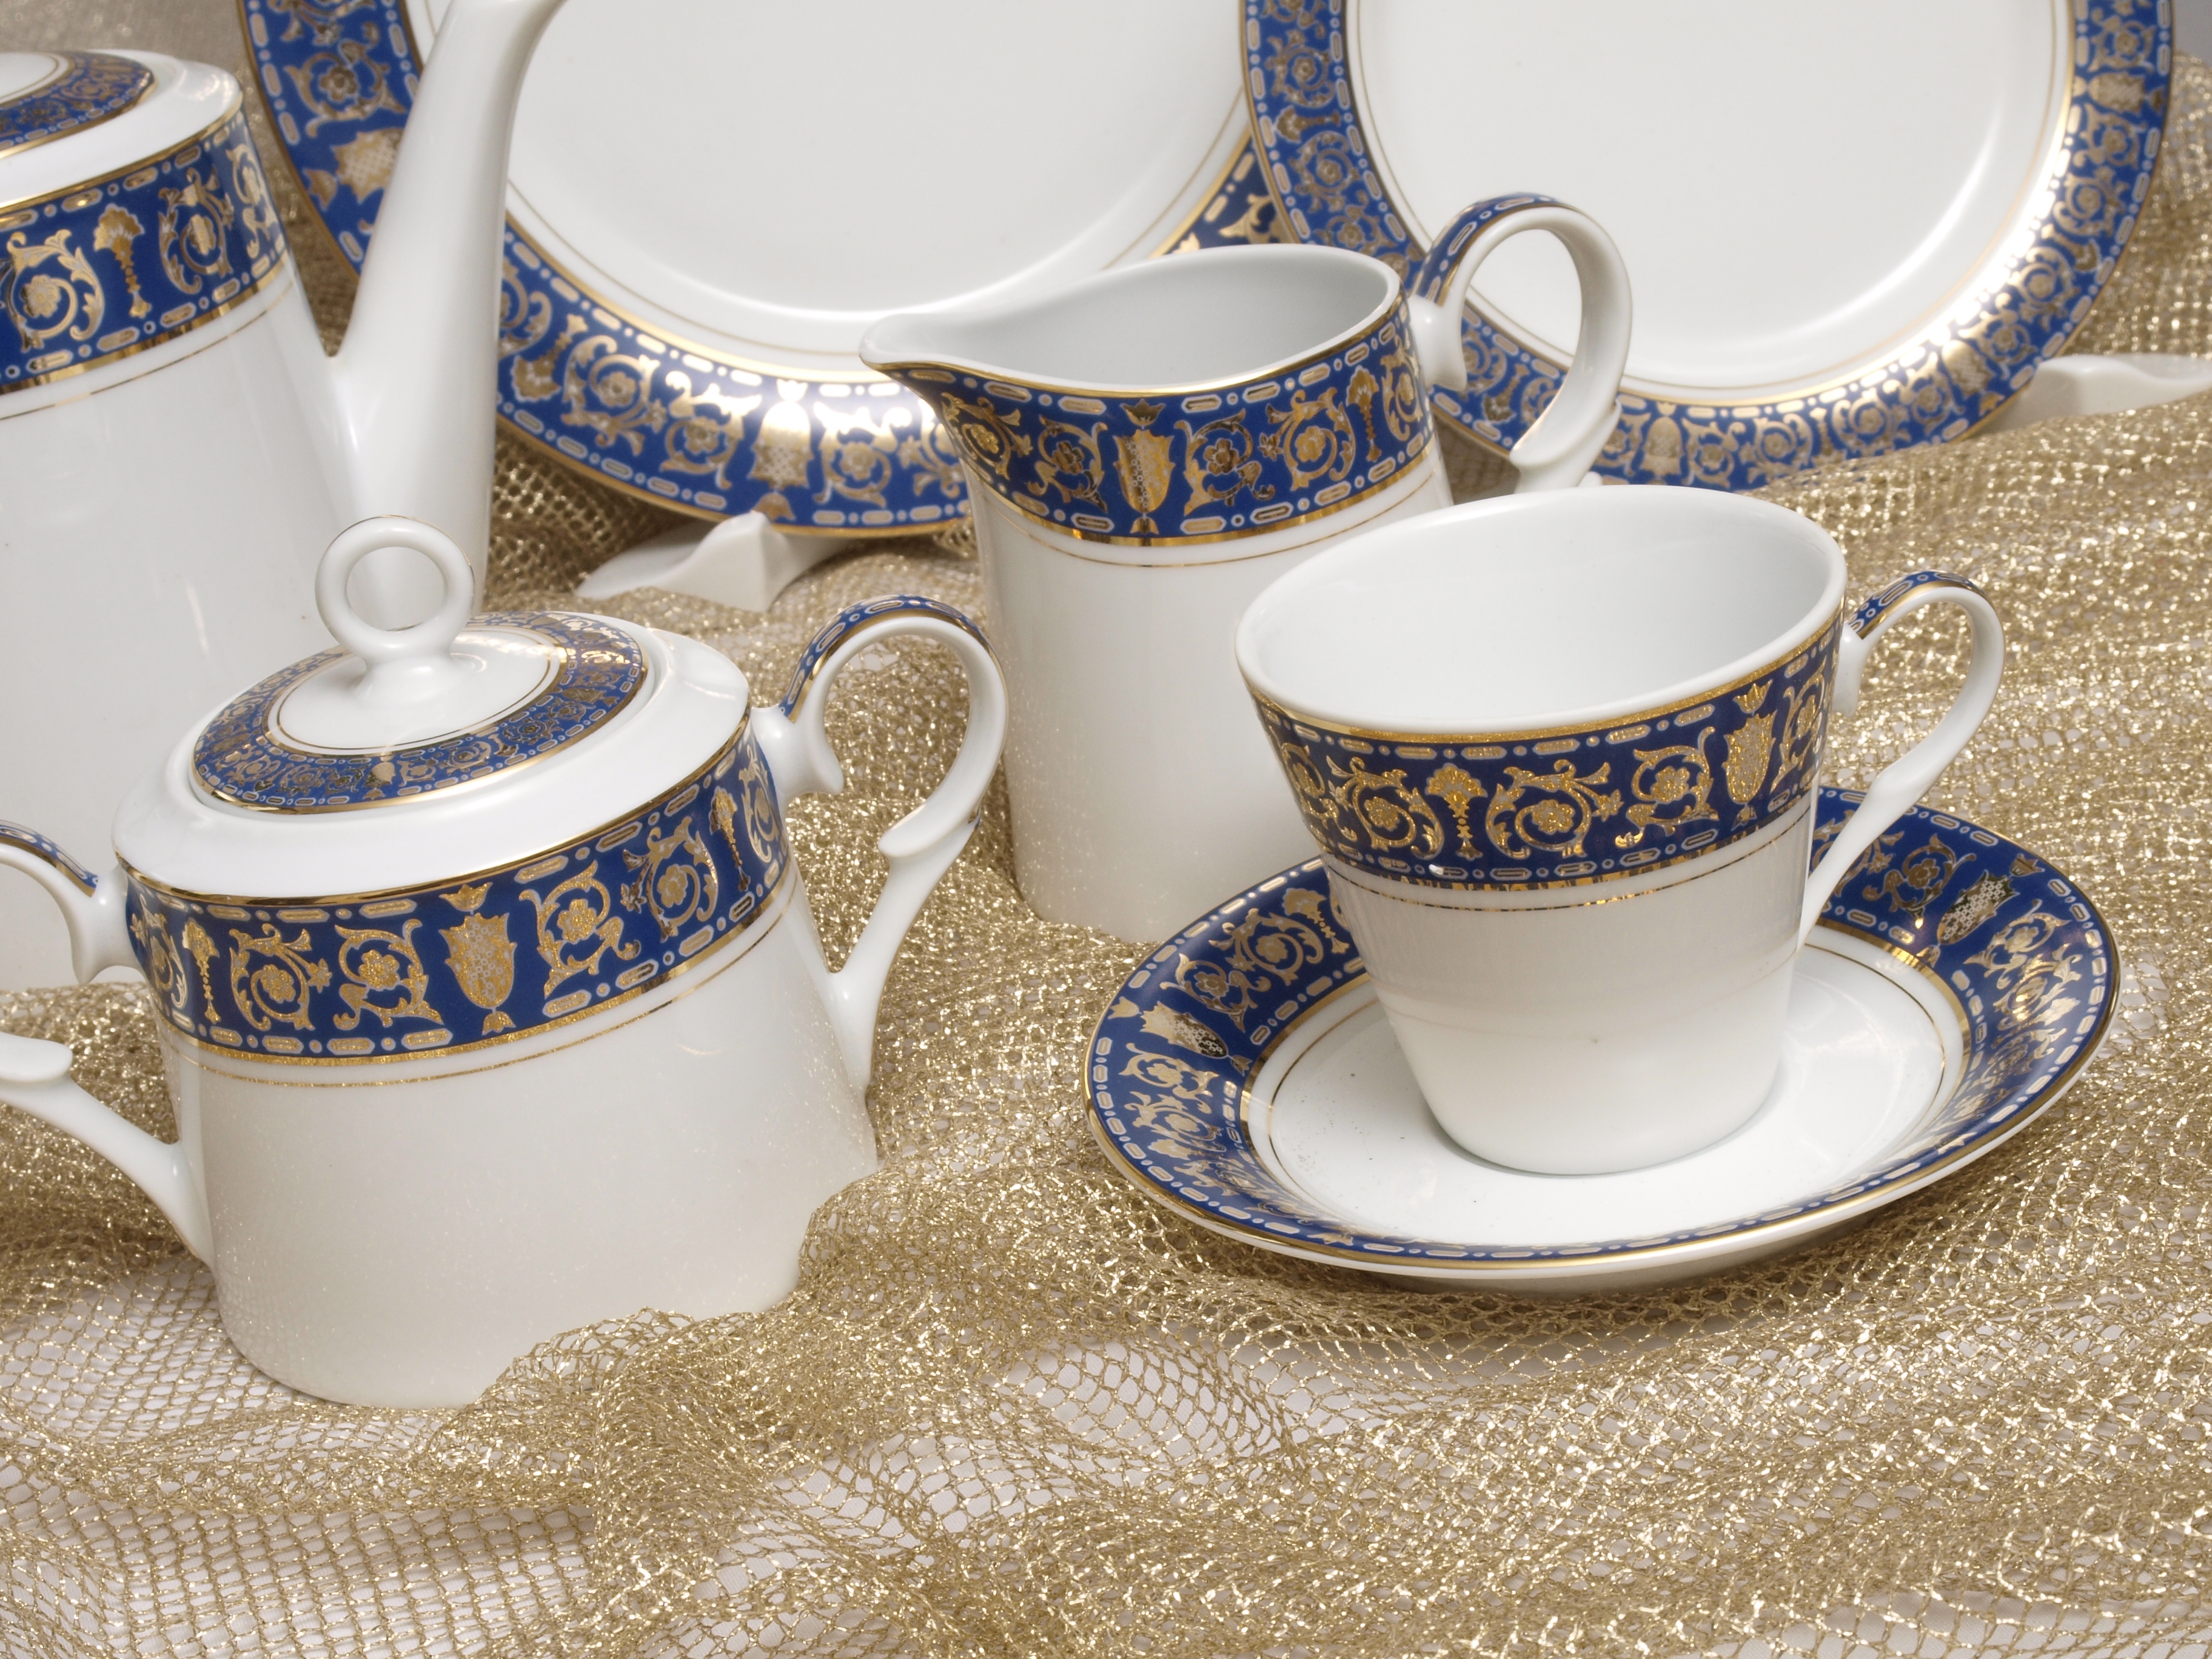 THE ROYAL BLUE 96 PIECE DINNER SERVICE